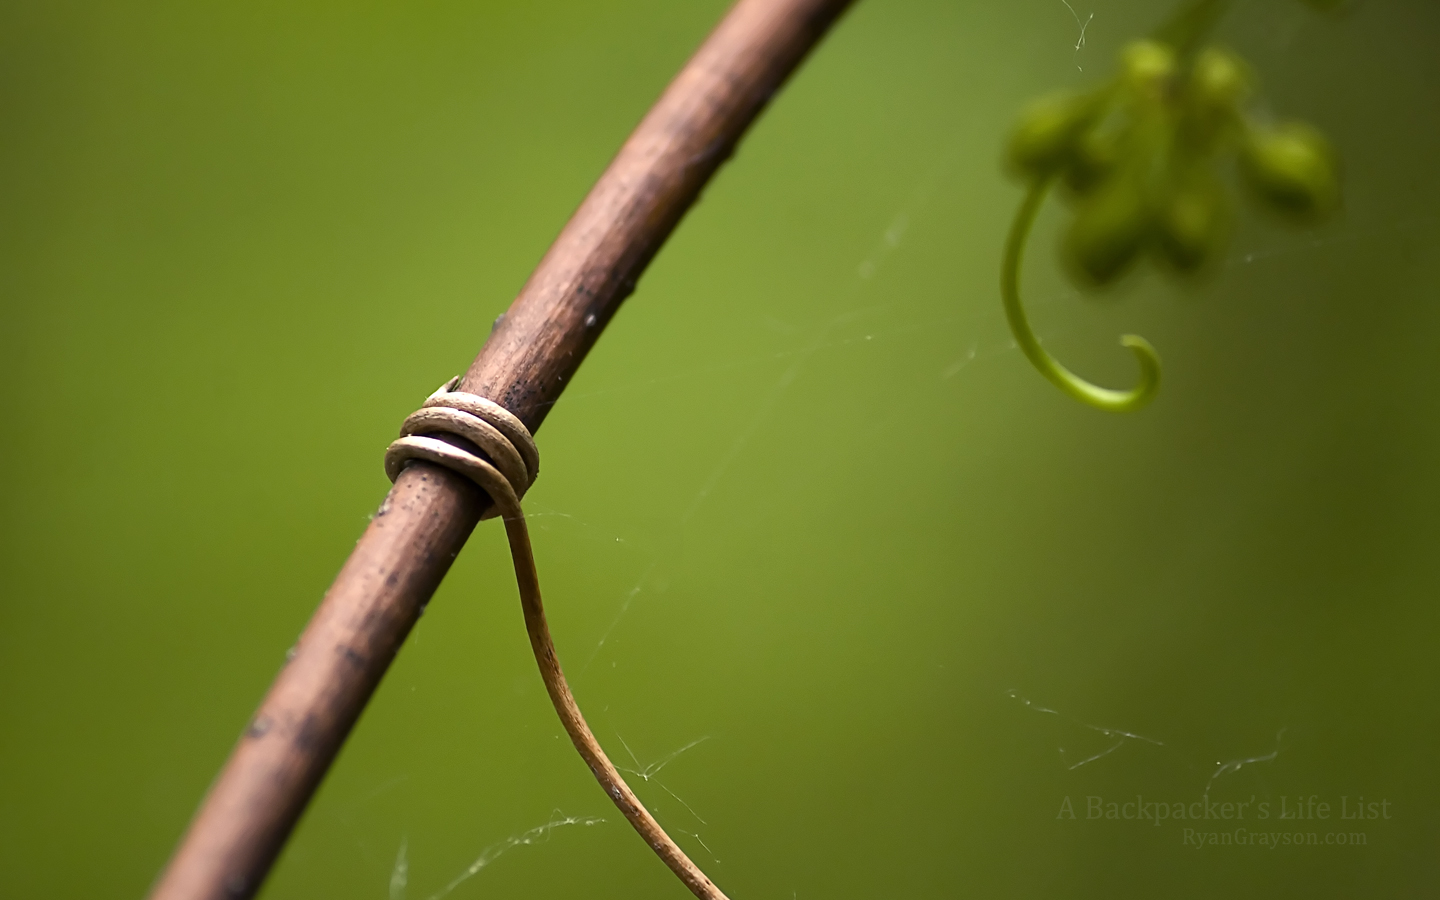 Tendril at Indiana Dunes